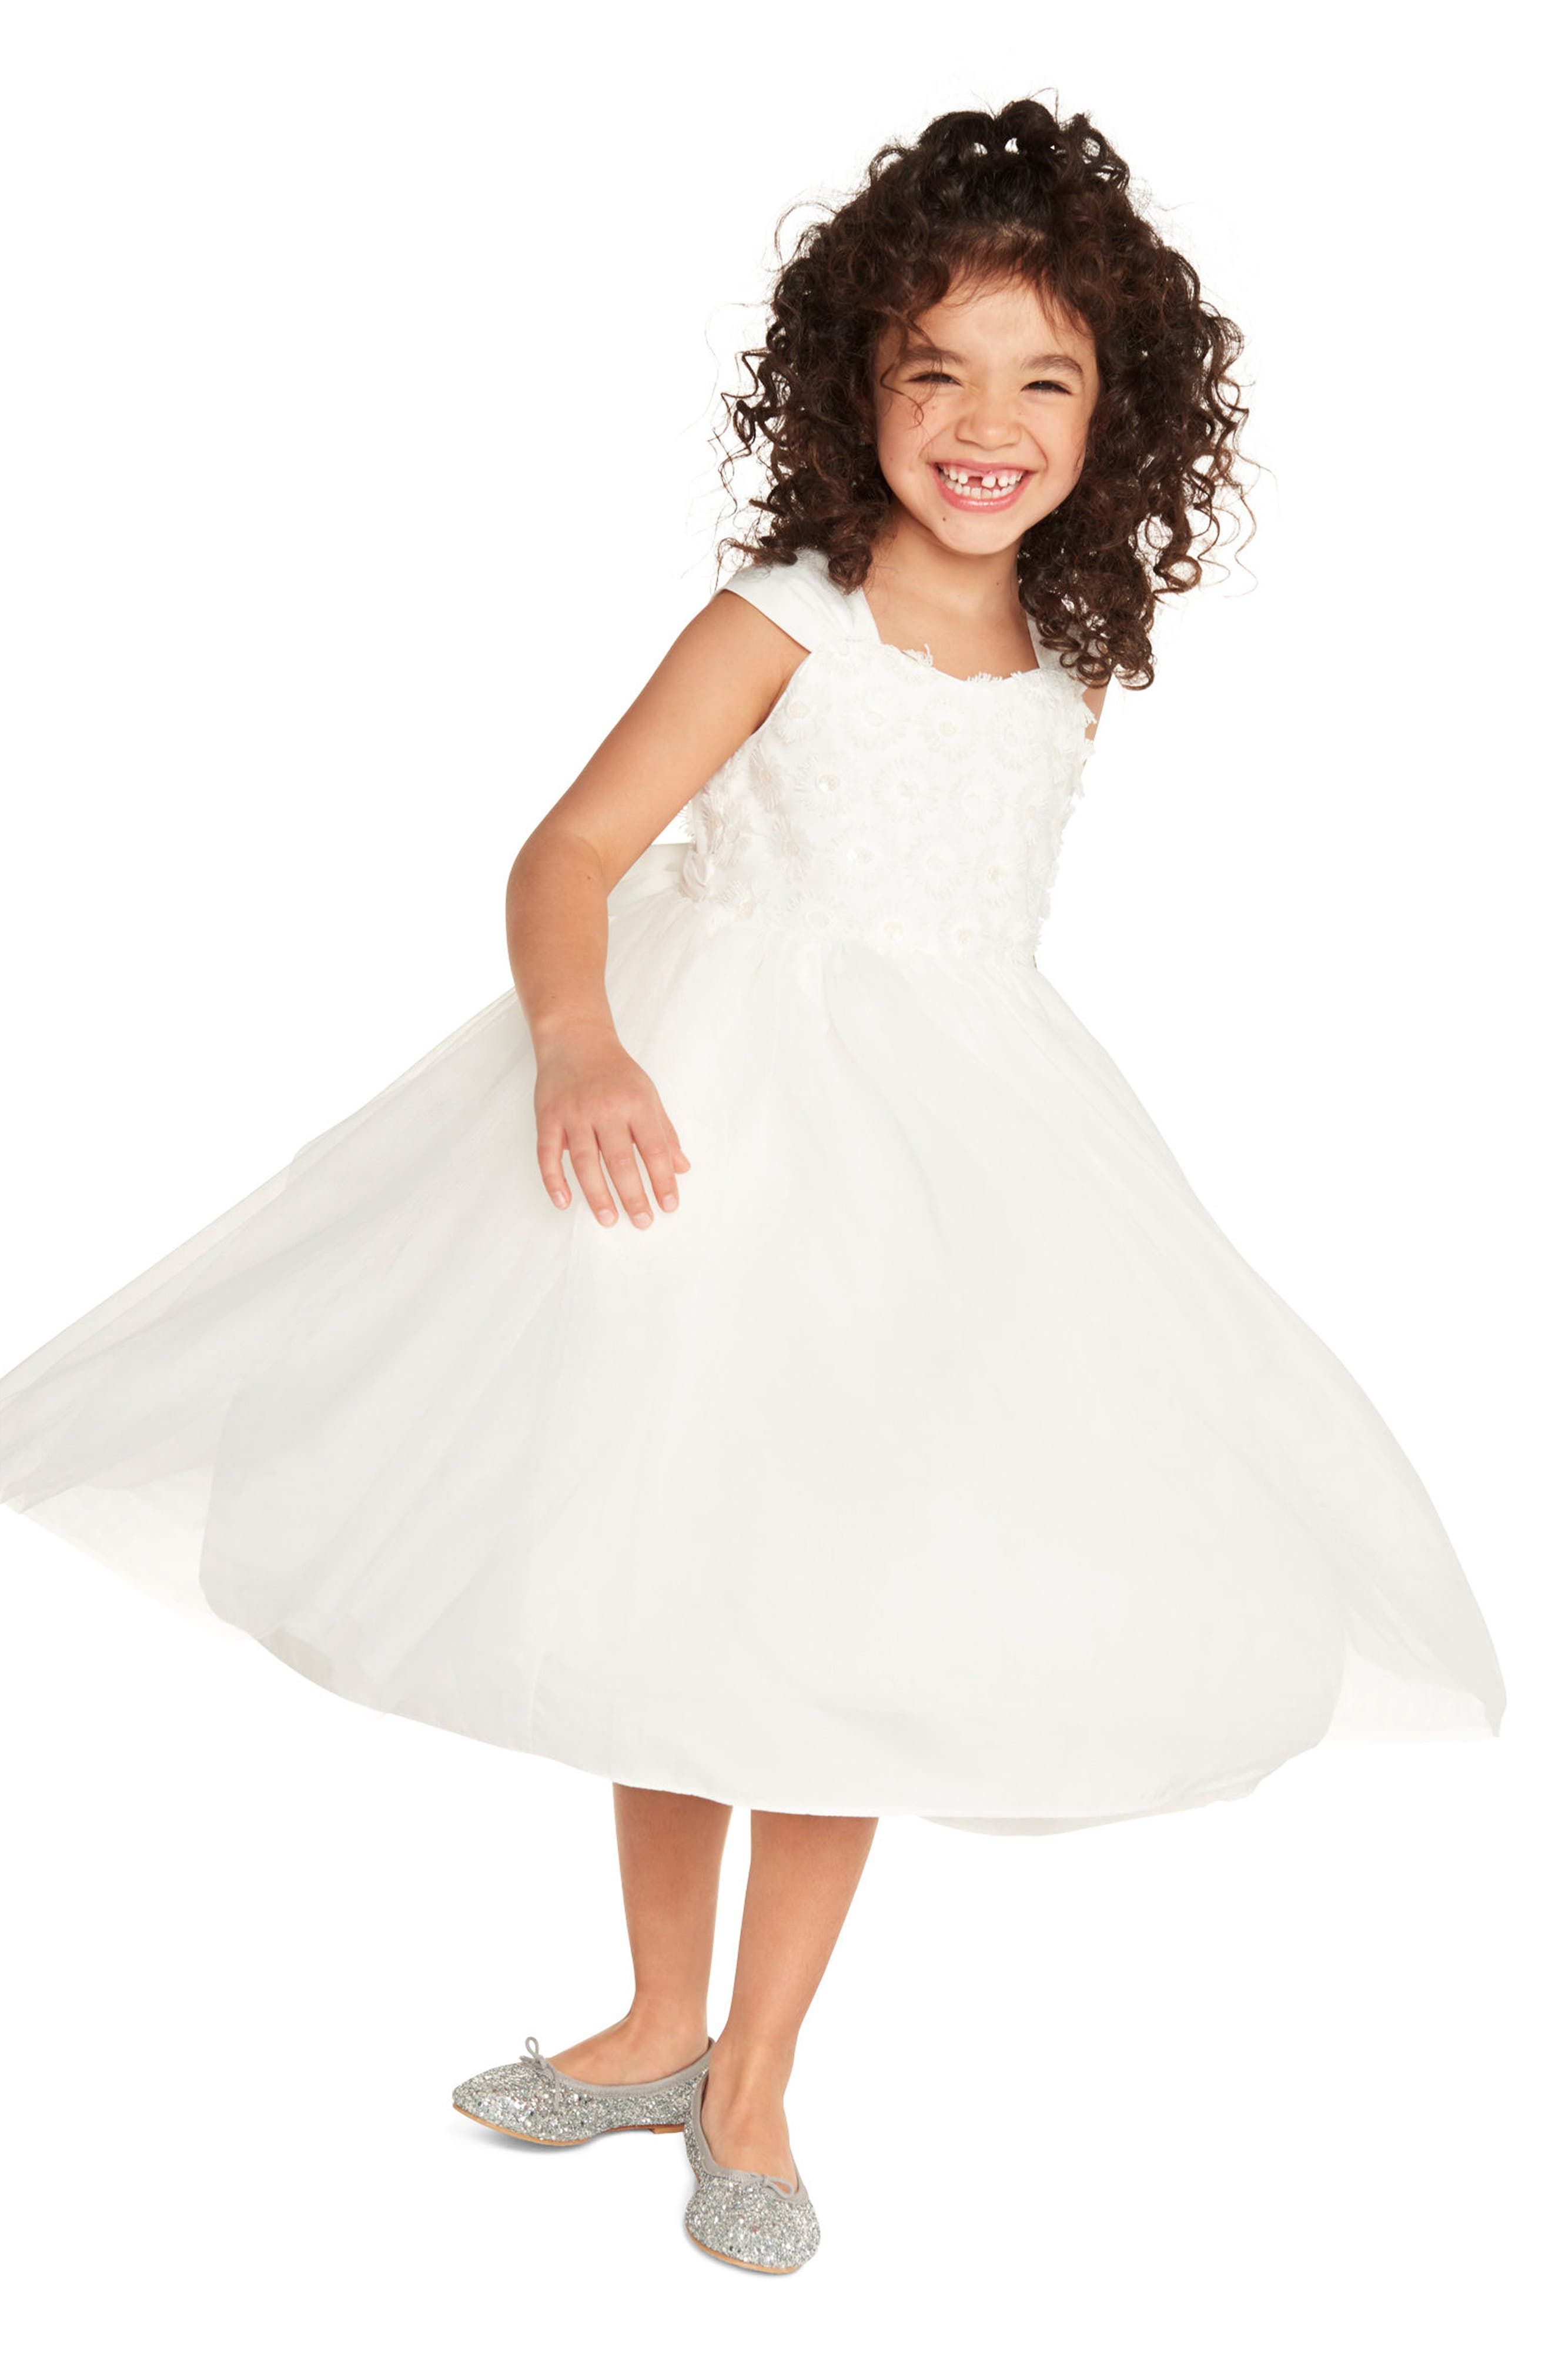 Embroidered Daisy Tulle Dress,                             Alternate thumbnail 4, color,                             White